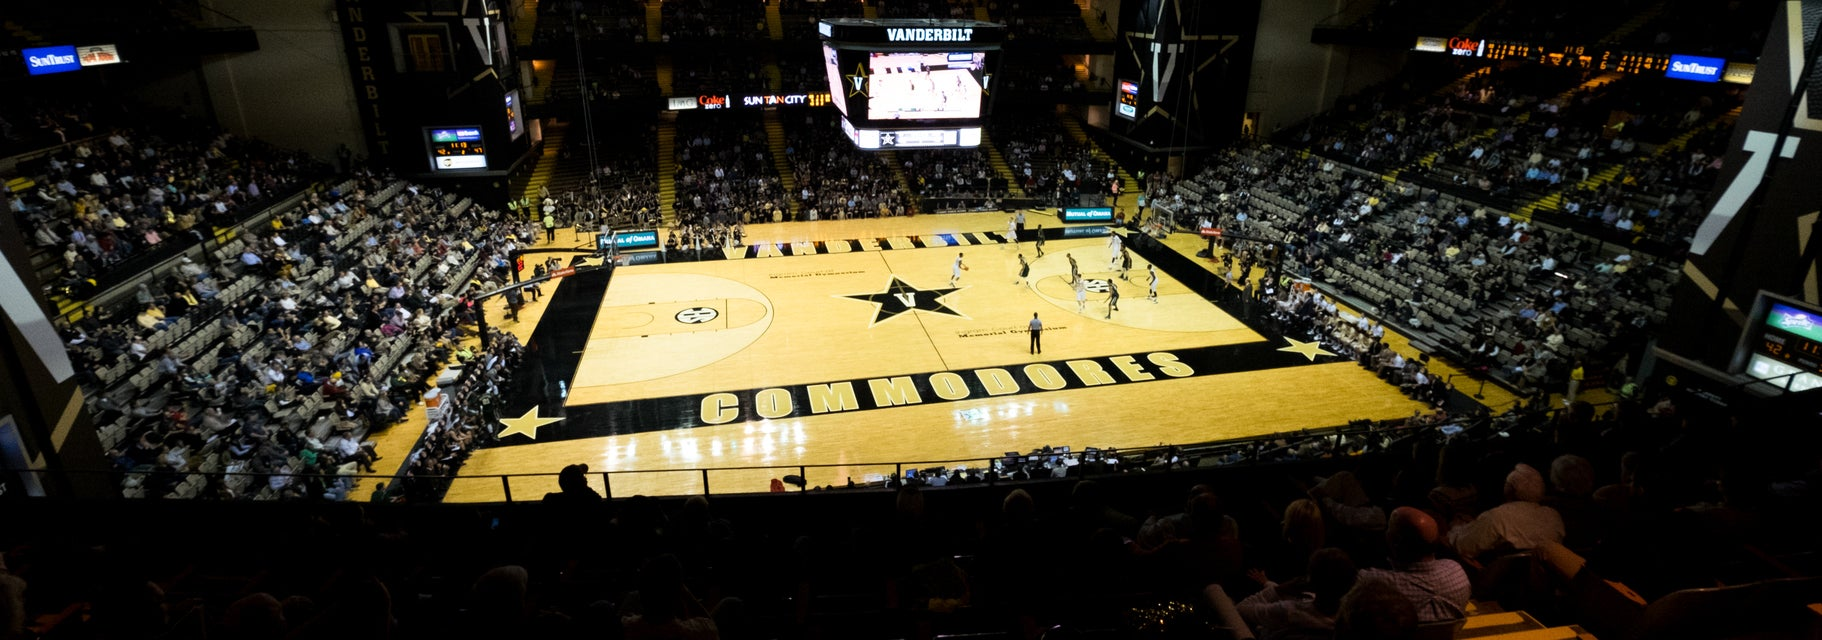 Vanderbilt Basketball Tickets